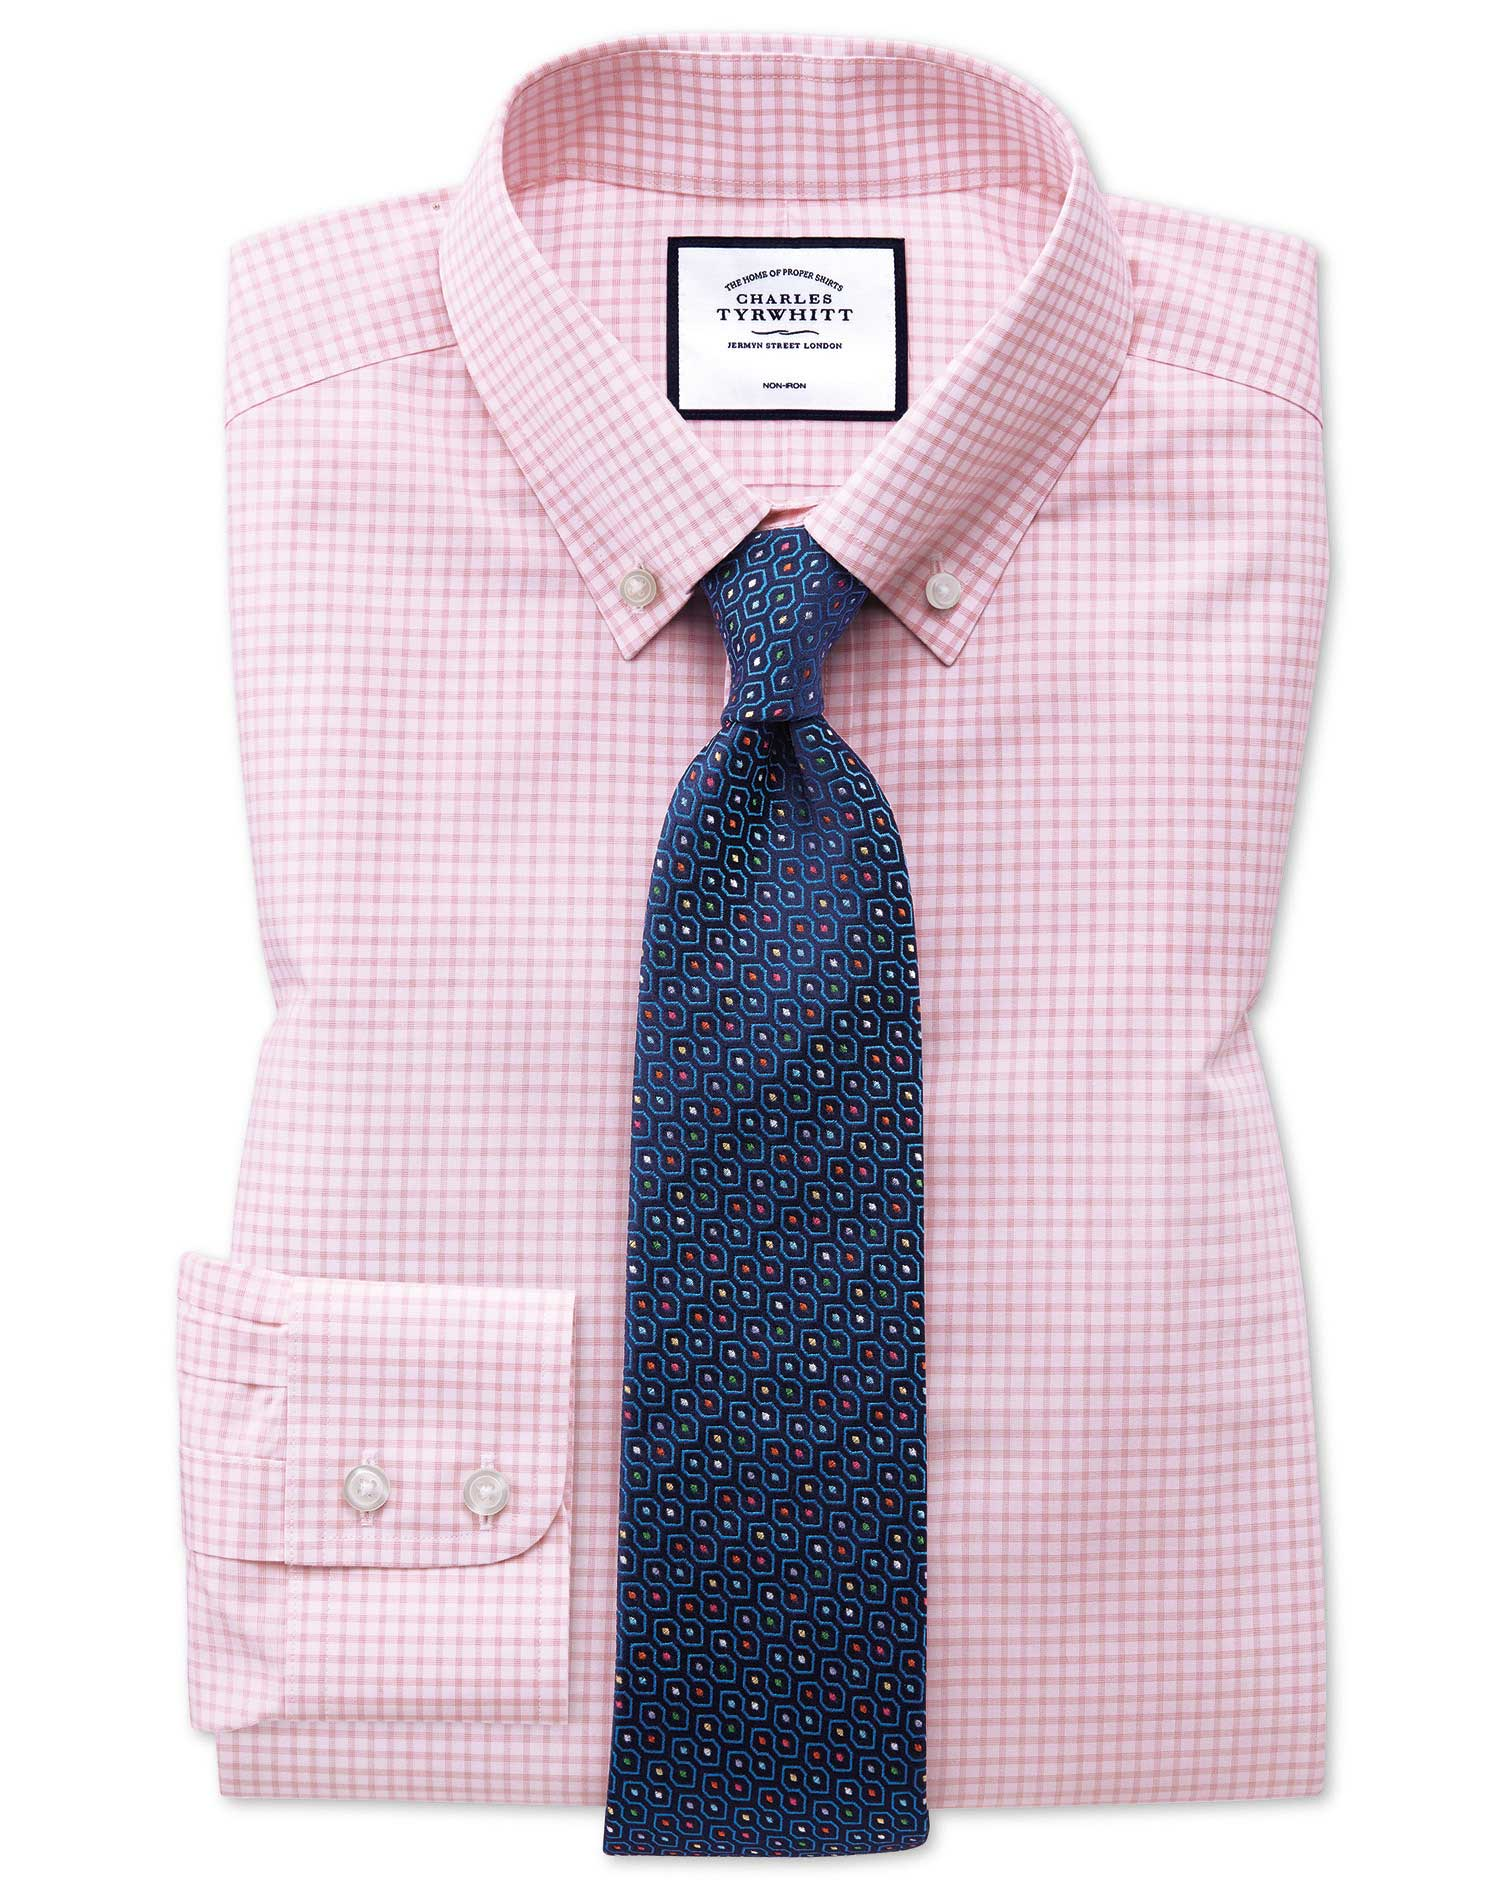 Slim Fit Button-Down Non-Iron Pink Windowpane Check Cotton Formal Shirt Single Cuff Size 17/36 by Ch